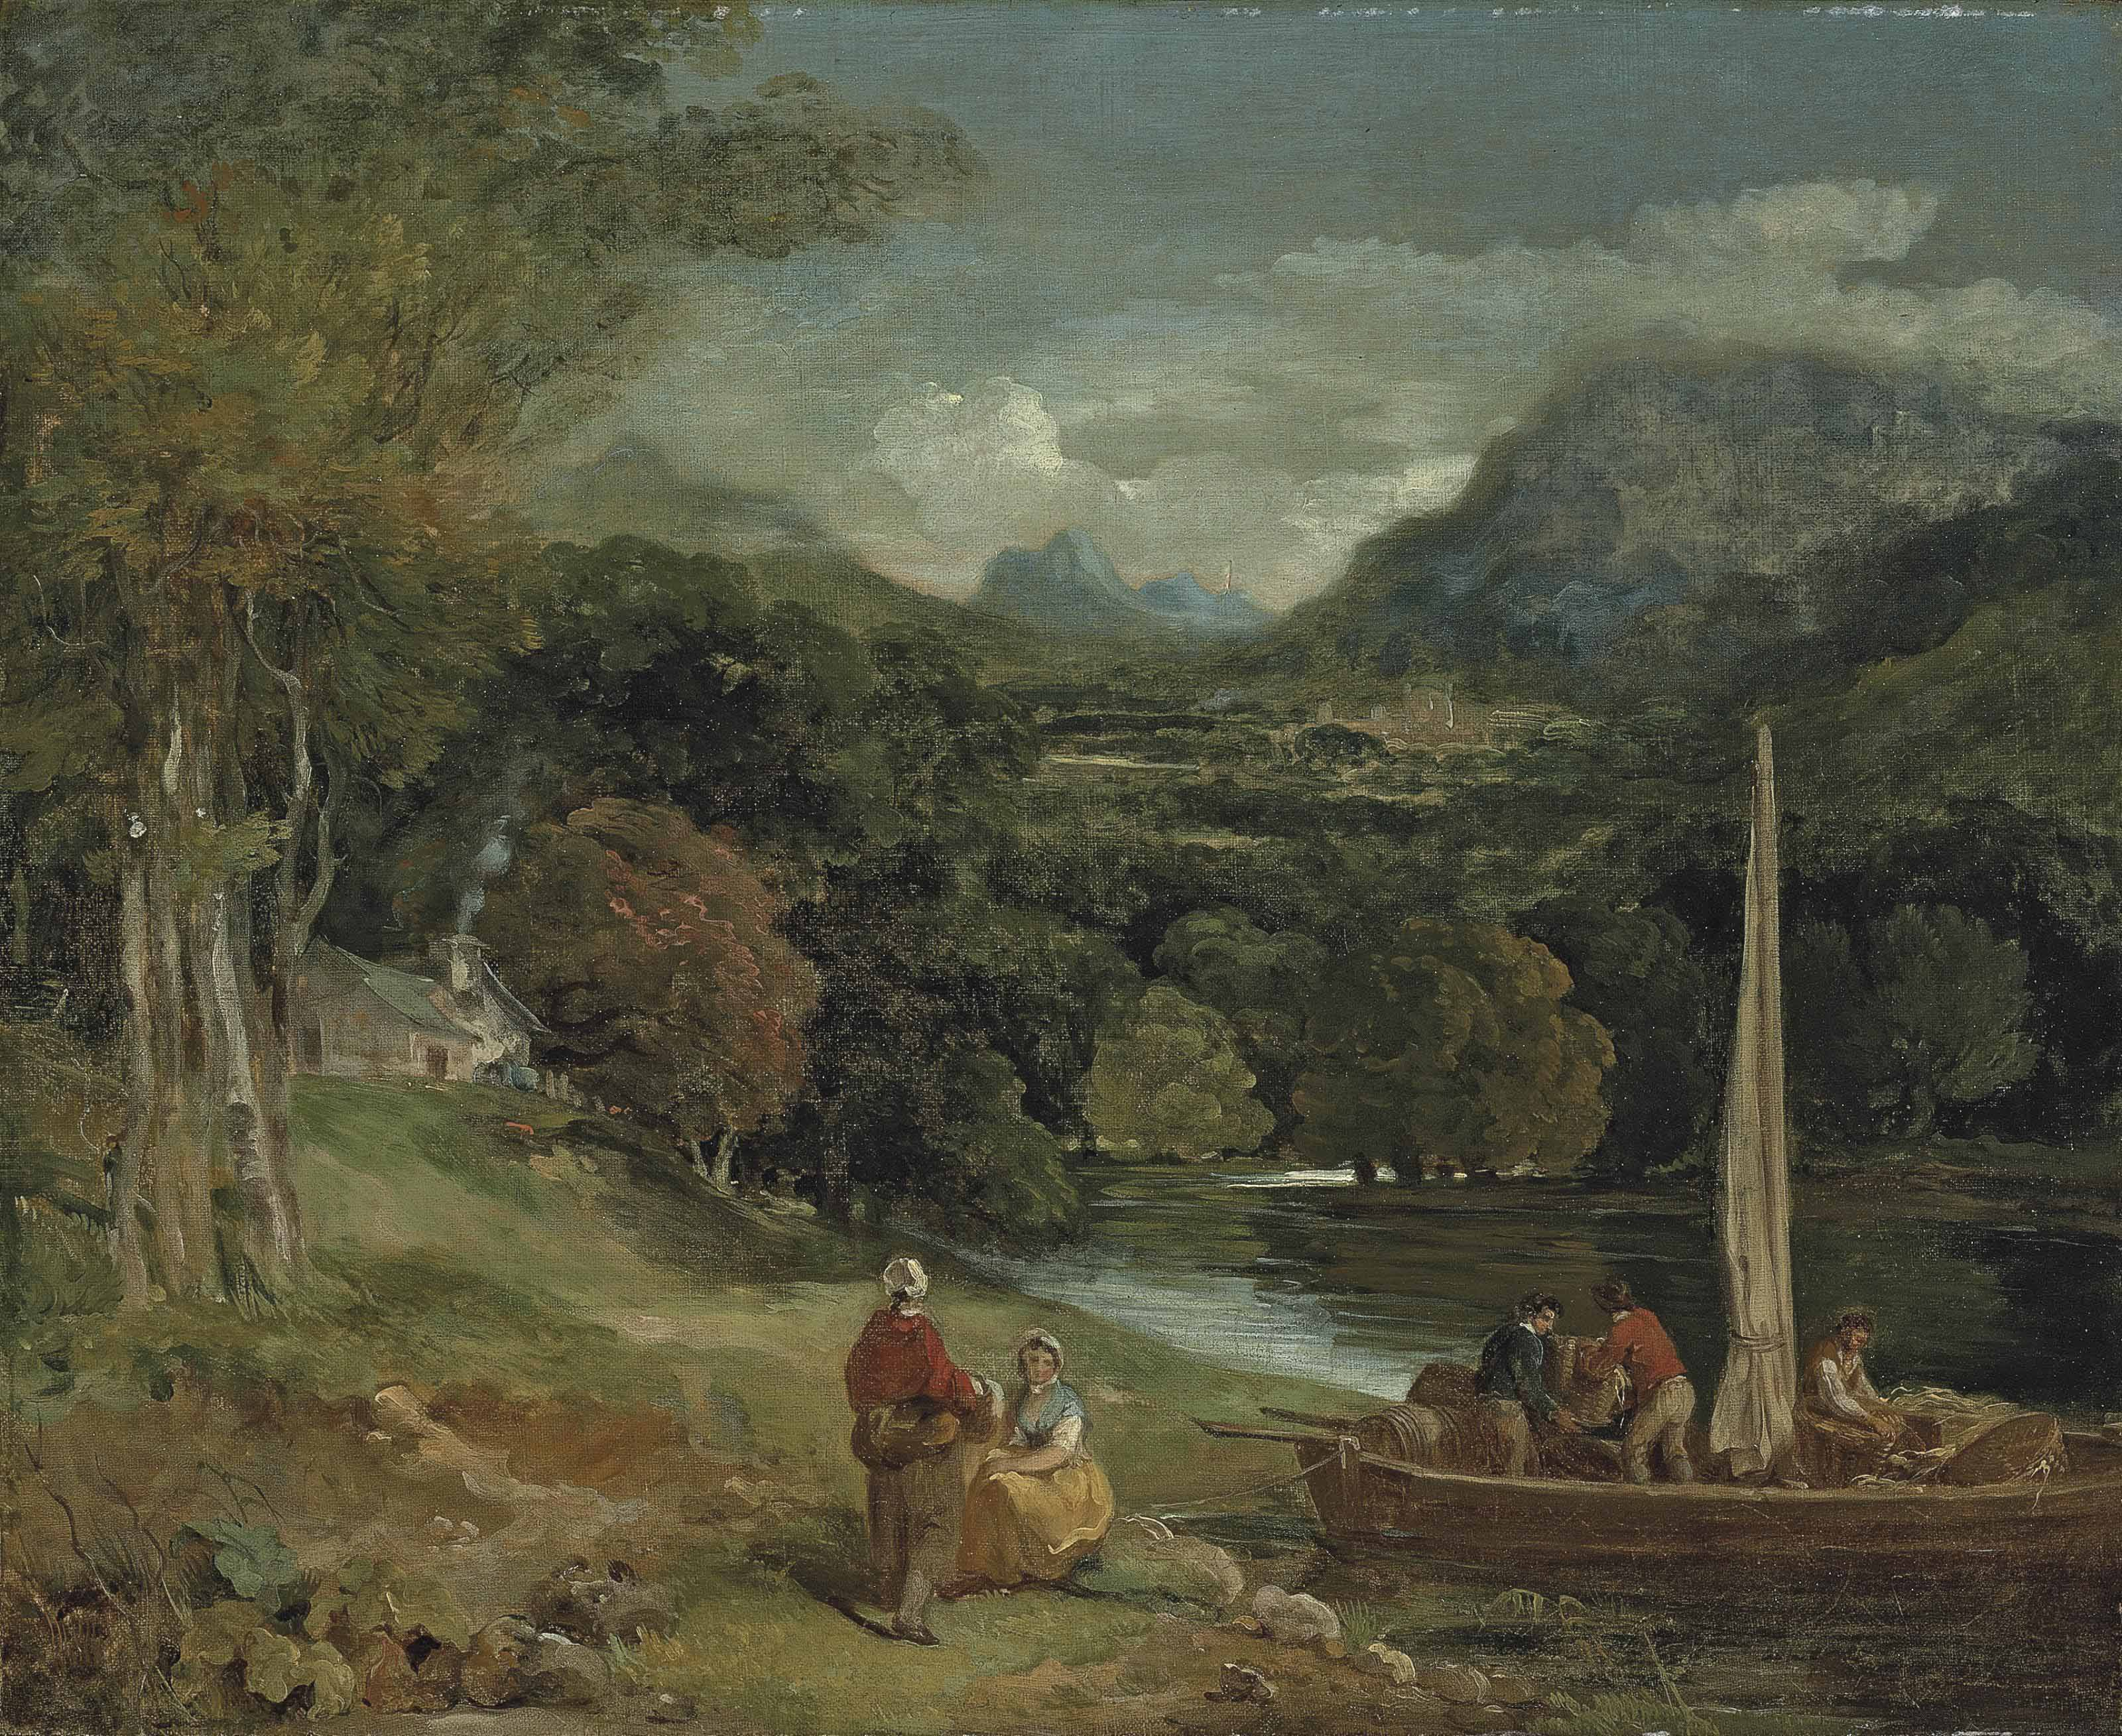 A wooded river landscape with figures unloading barrels from a small ferry boat, a cottage and mountains beyond